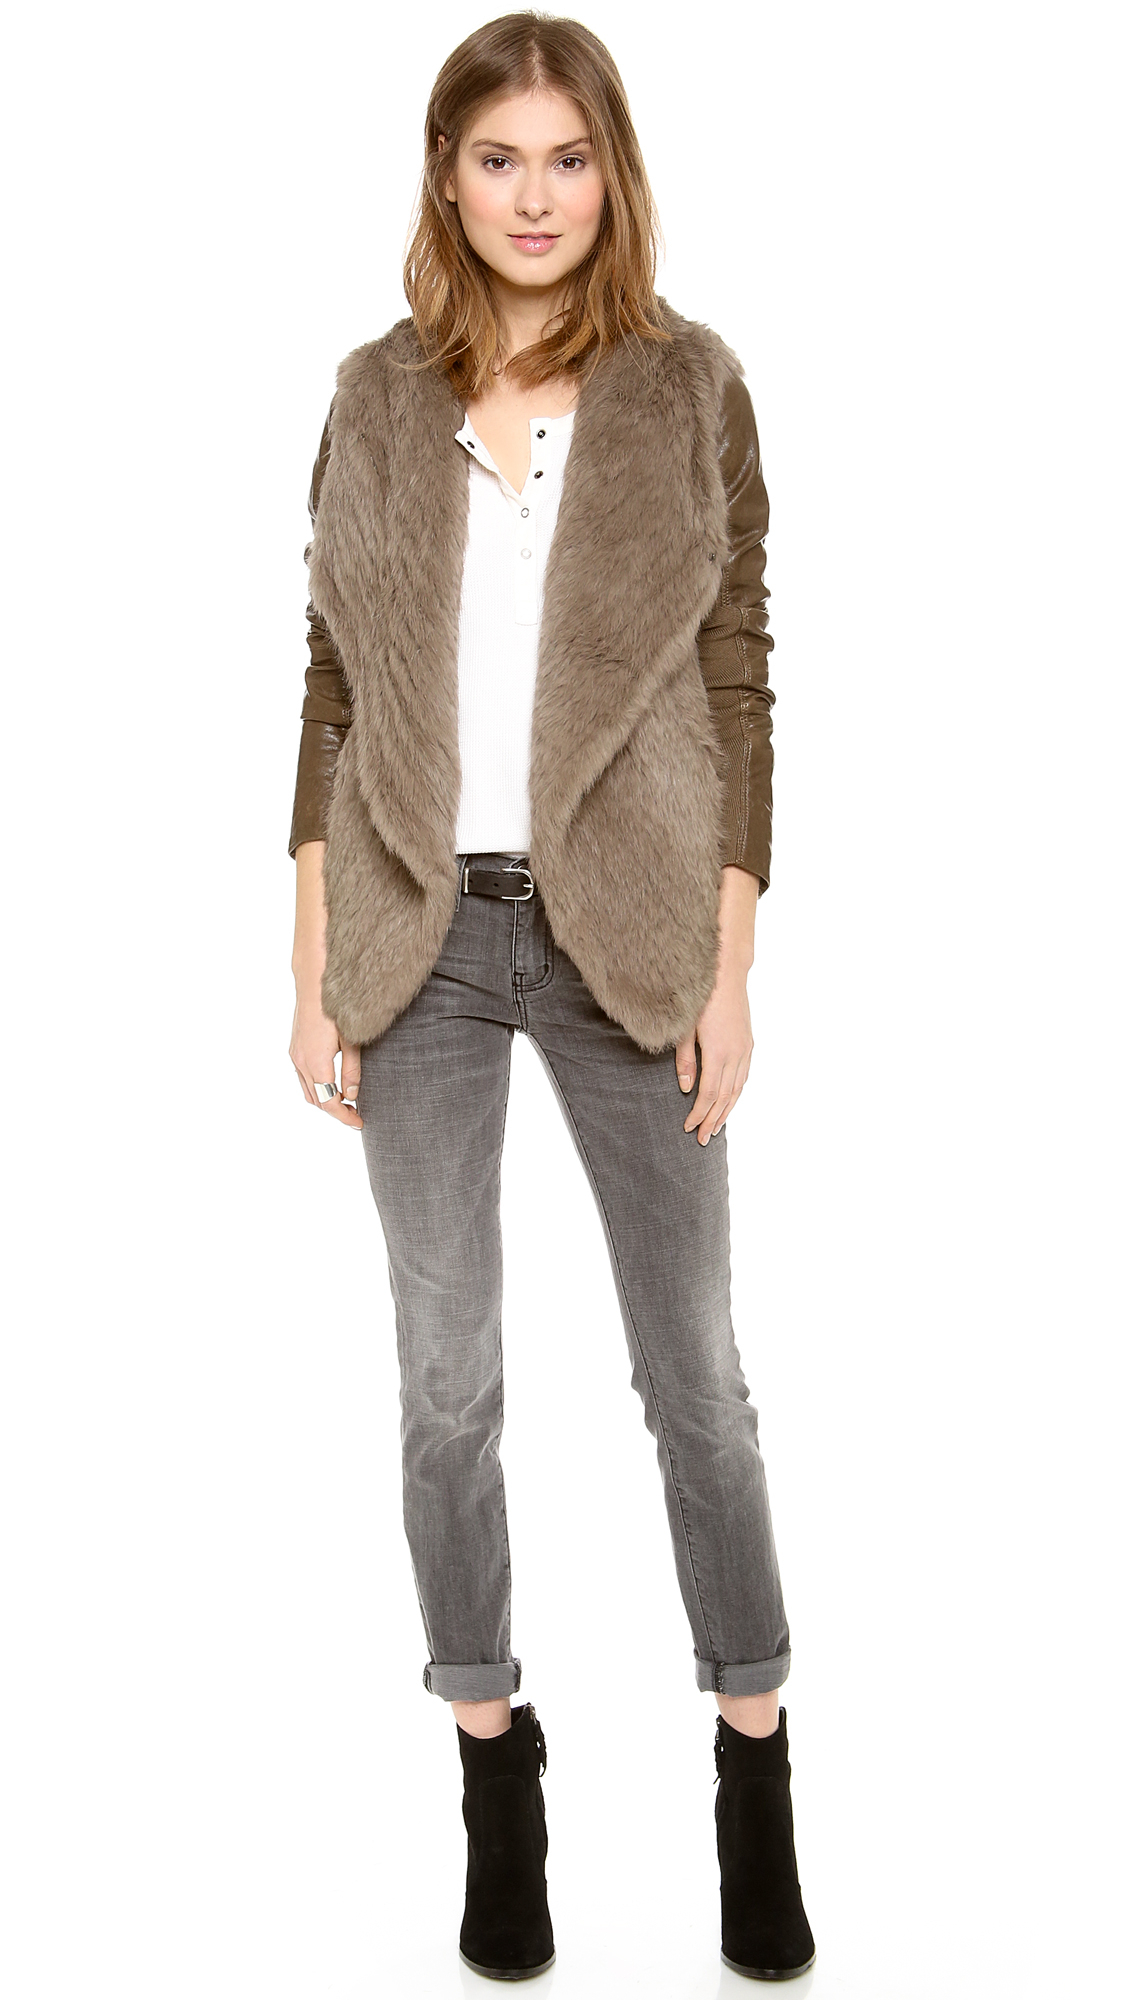 June Knit Fur Jacket with Leather Sleeves in Brown | Lyst